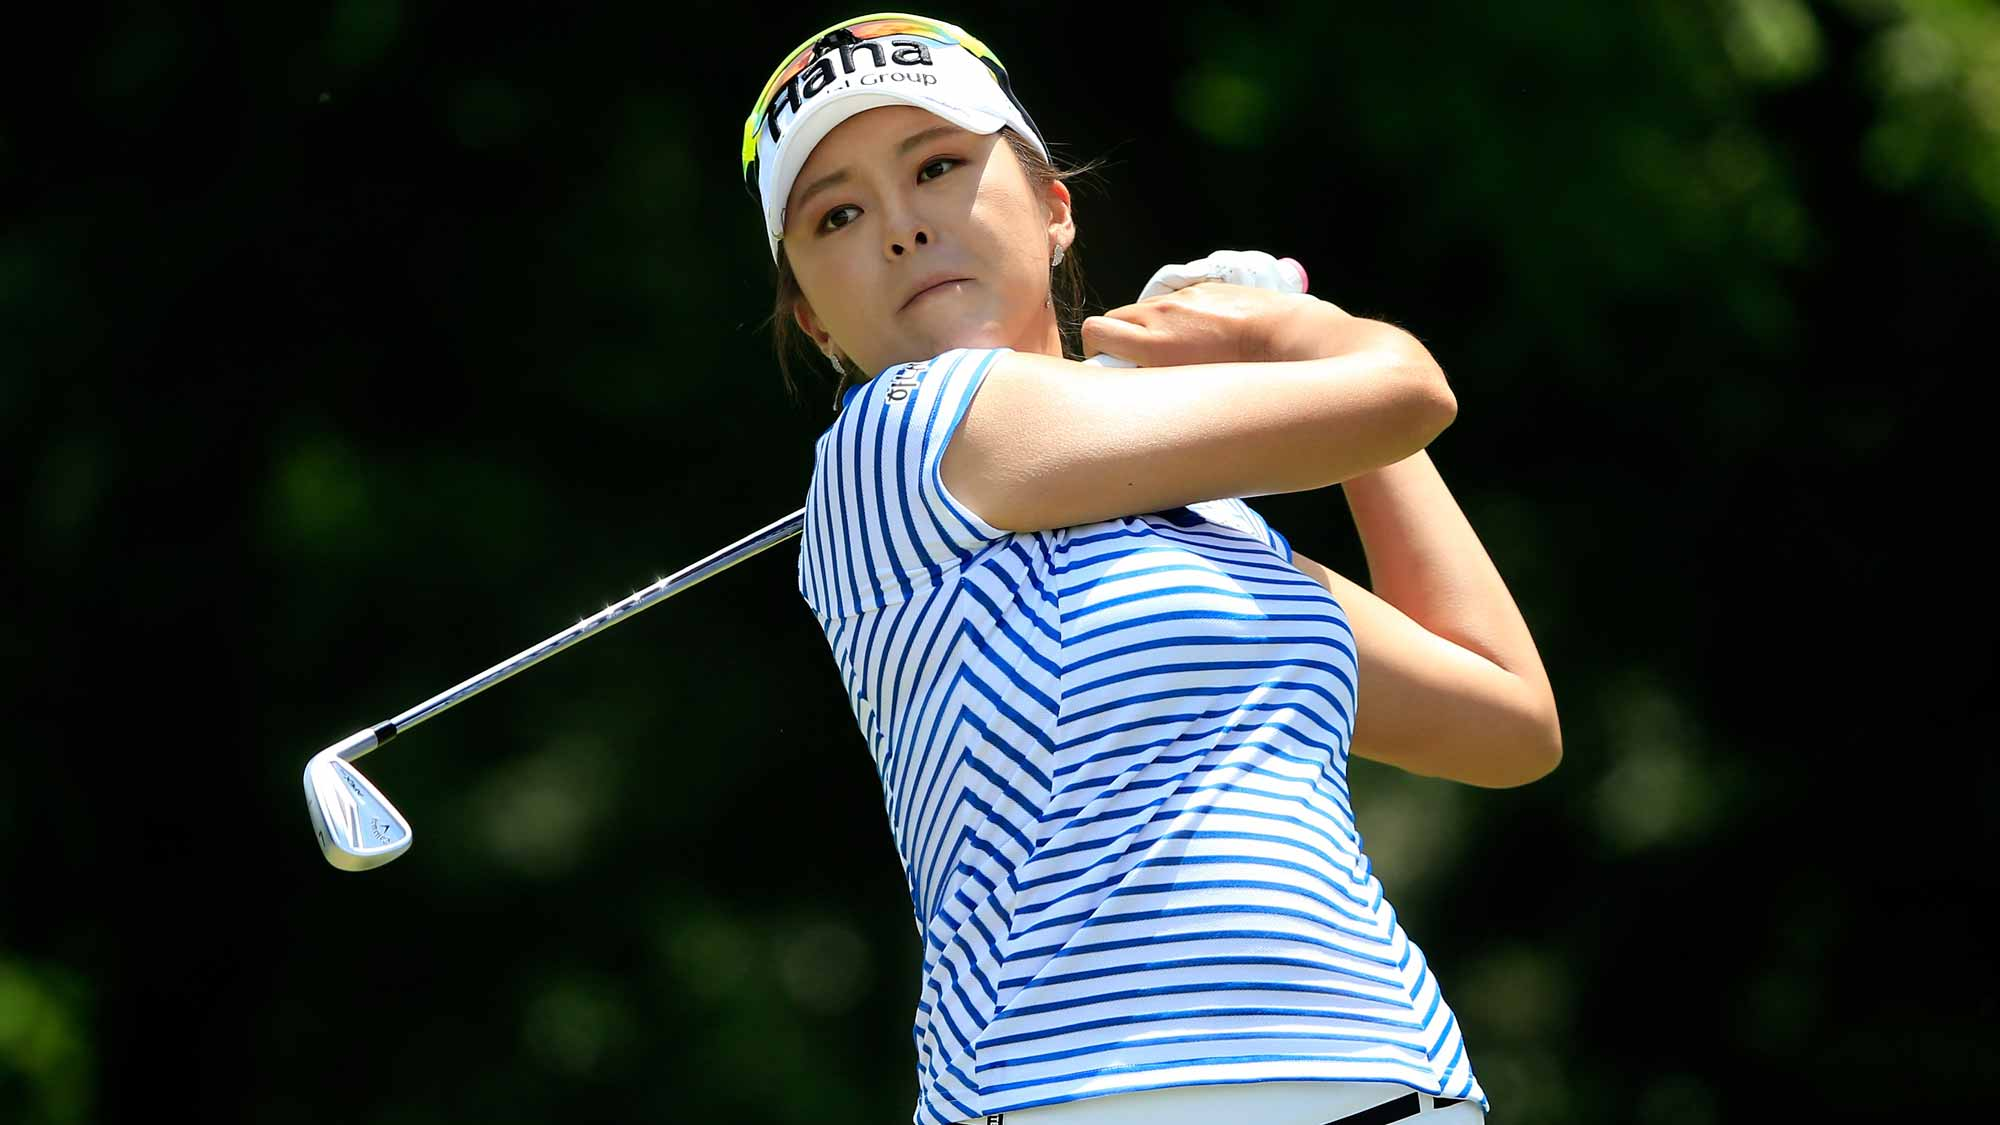 Mi Jung Hur of South Korea plays a shot on the third hole during the second round of the Walmart NW Arkansas Championship Presented by P&G at Pinnacle Country Club